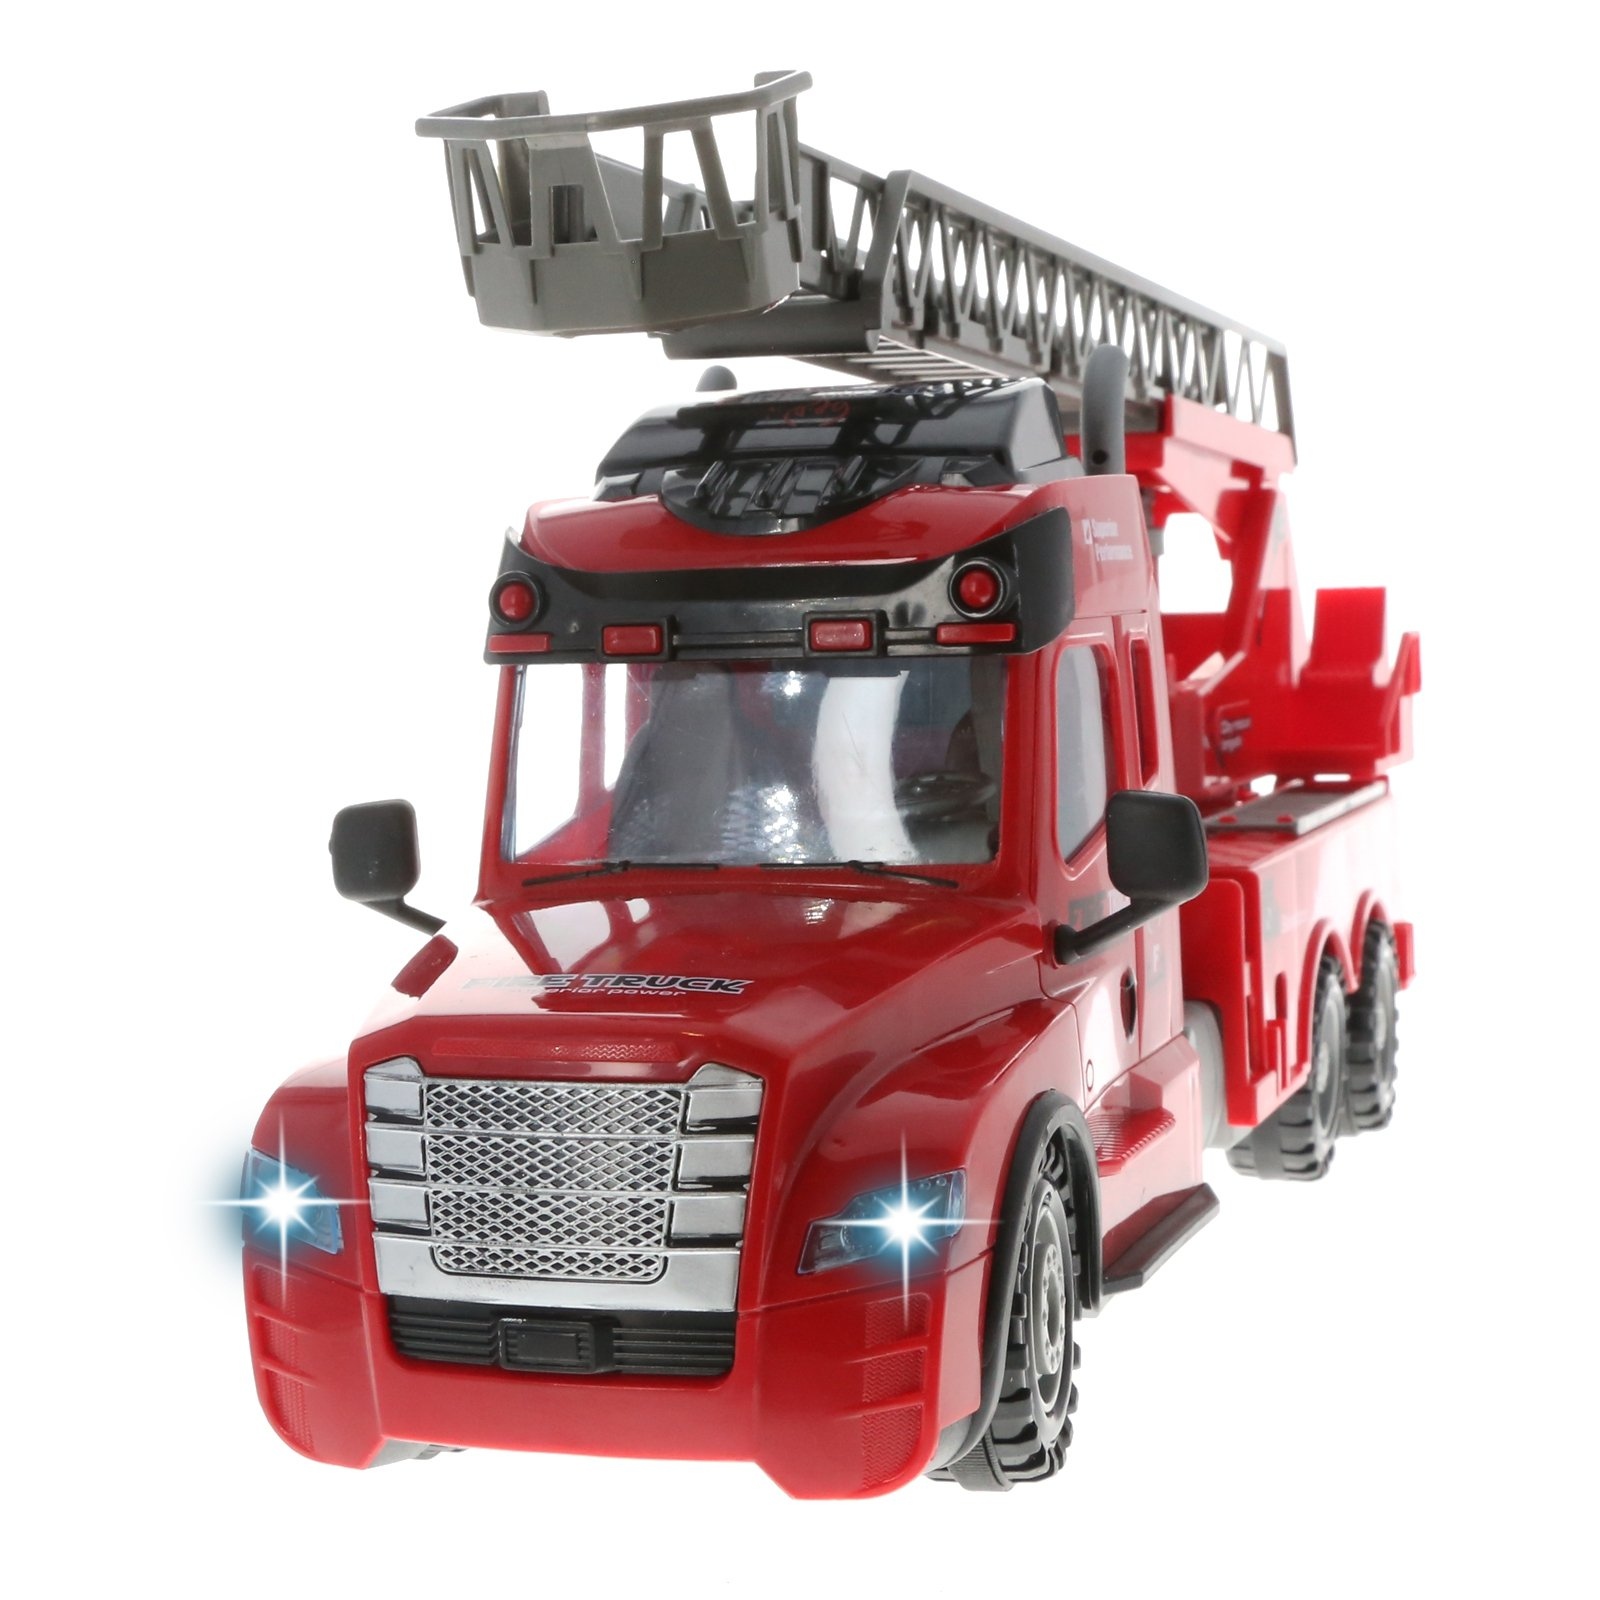 KidFun Fire Engine Light up Remote Control RC Fire Truck, Ages 3-12